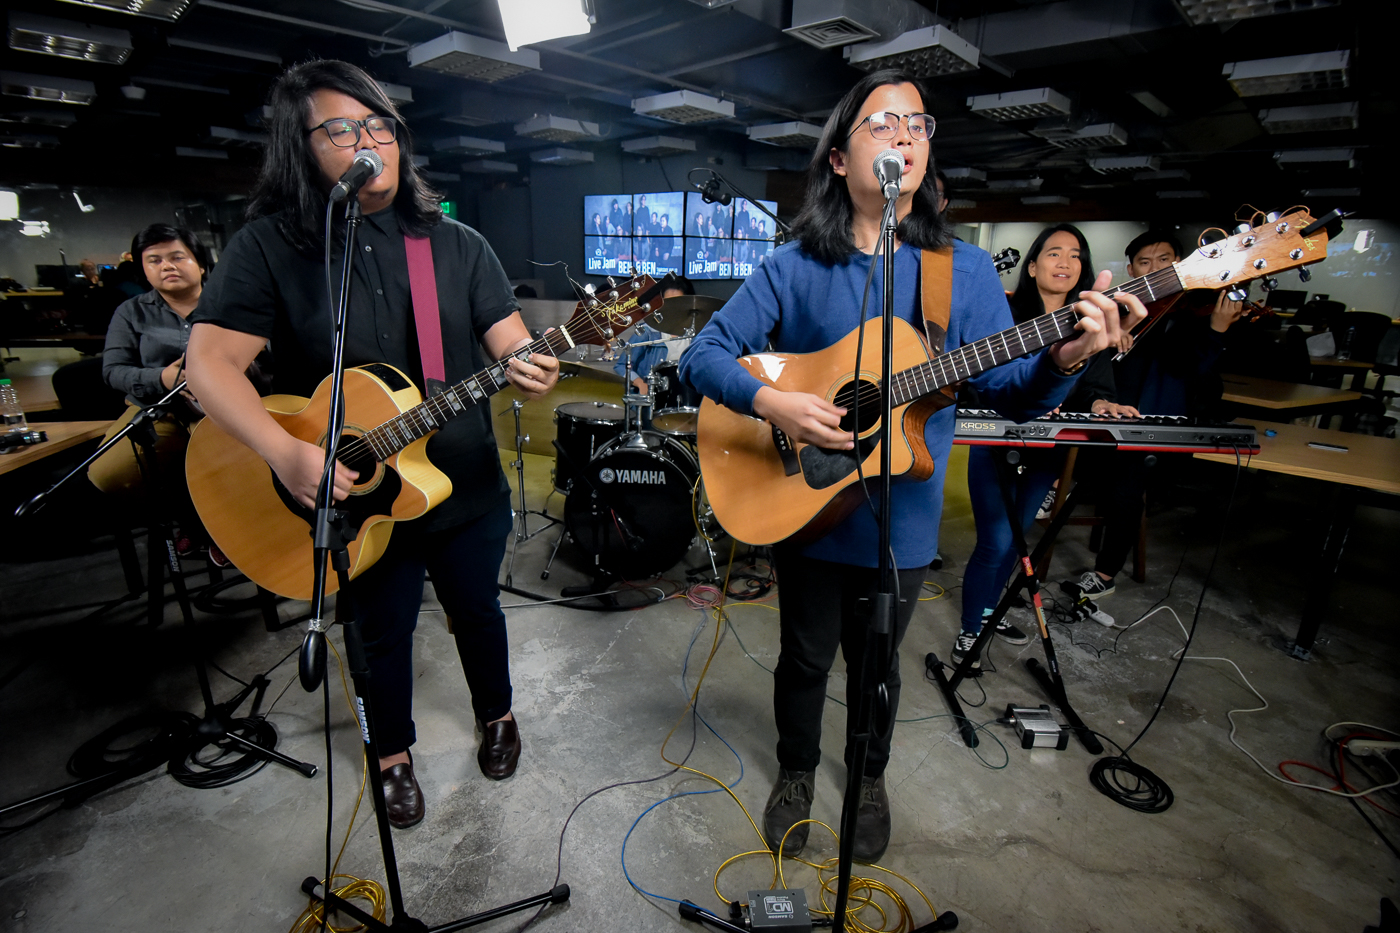 MOVING PERFORMANCE. Ben&Ben perform on Rappler Live Jam in August 2017. The singer-songwriters recently played for a fan battling cancer. File photo by Leanne Jazul/Rappler